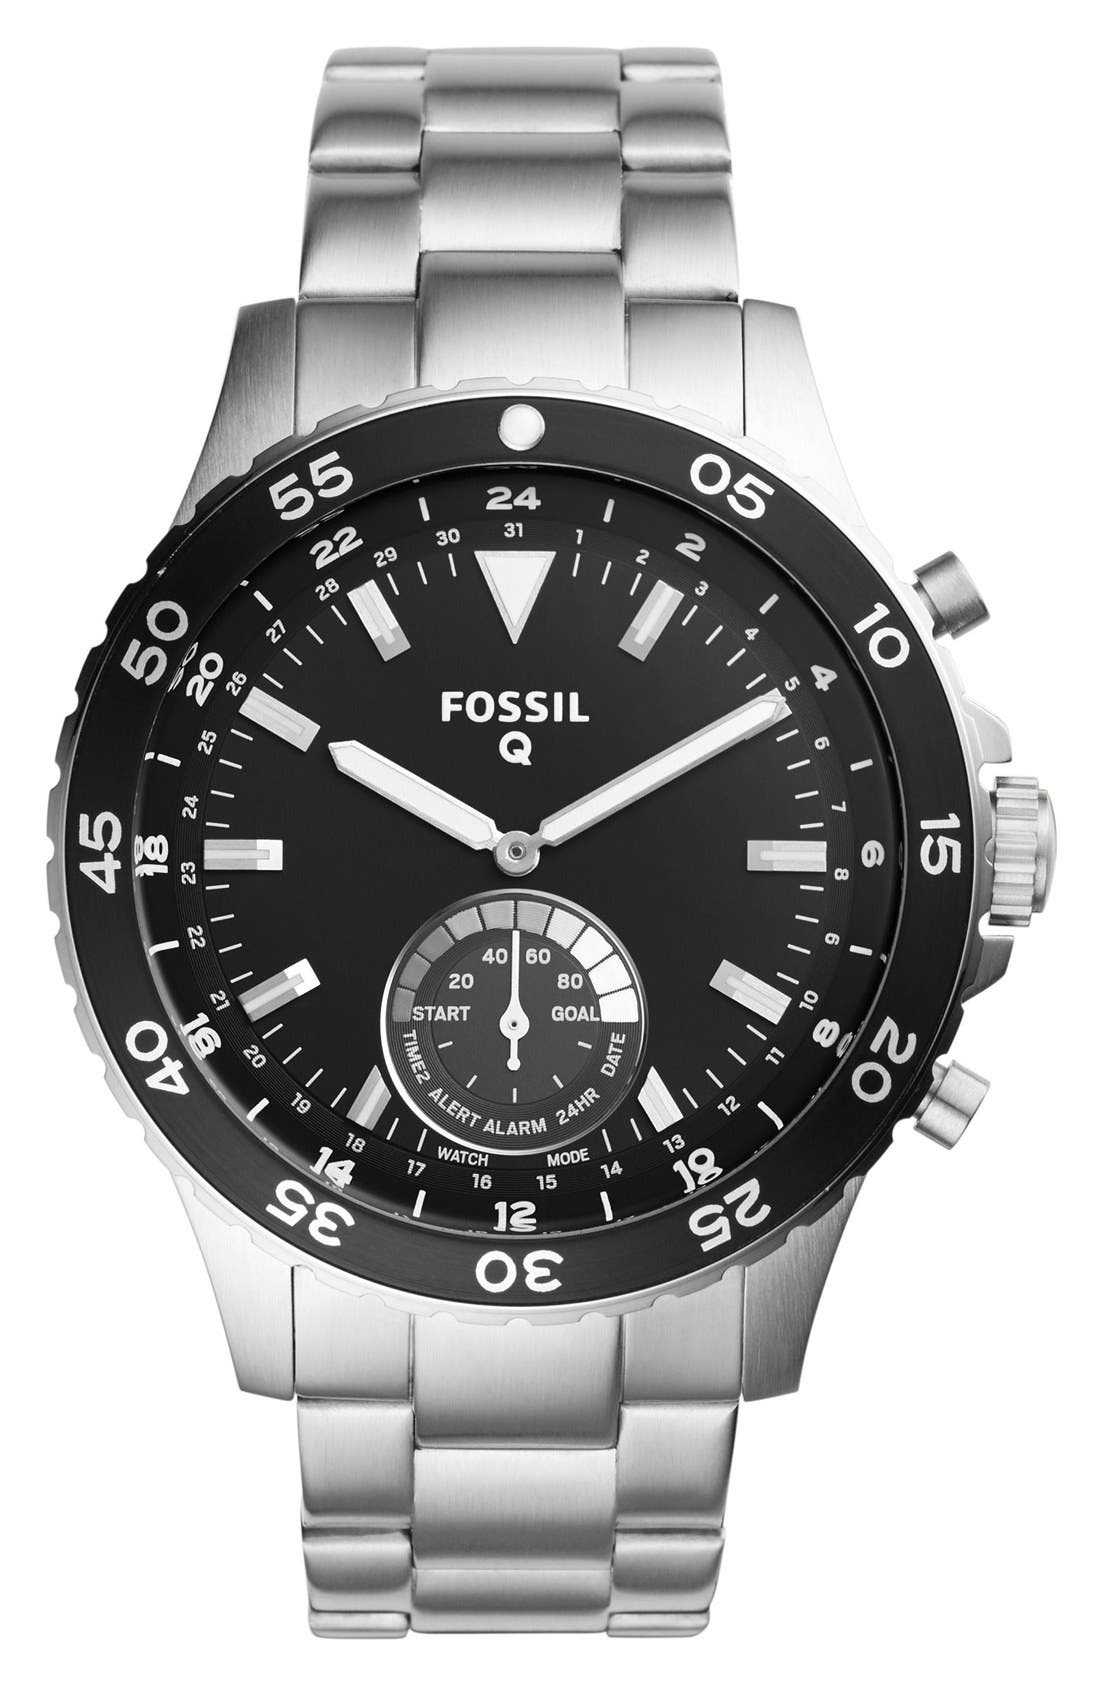 Main Image - Fossil Q Crewmaster Smart Bracelet Watch, 46mm